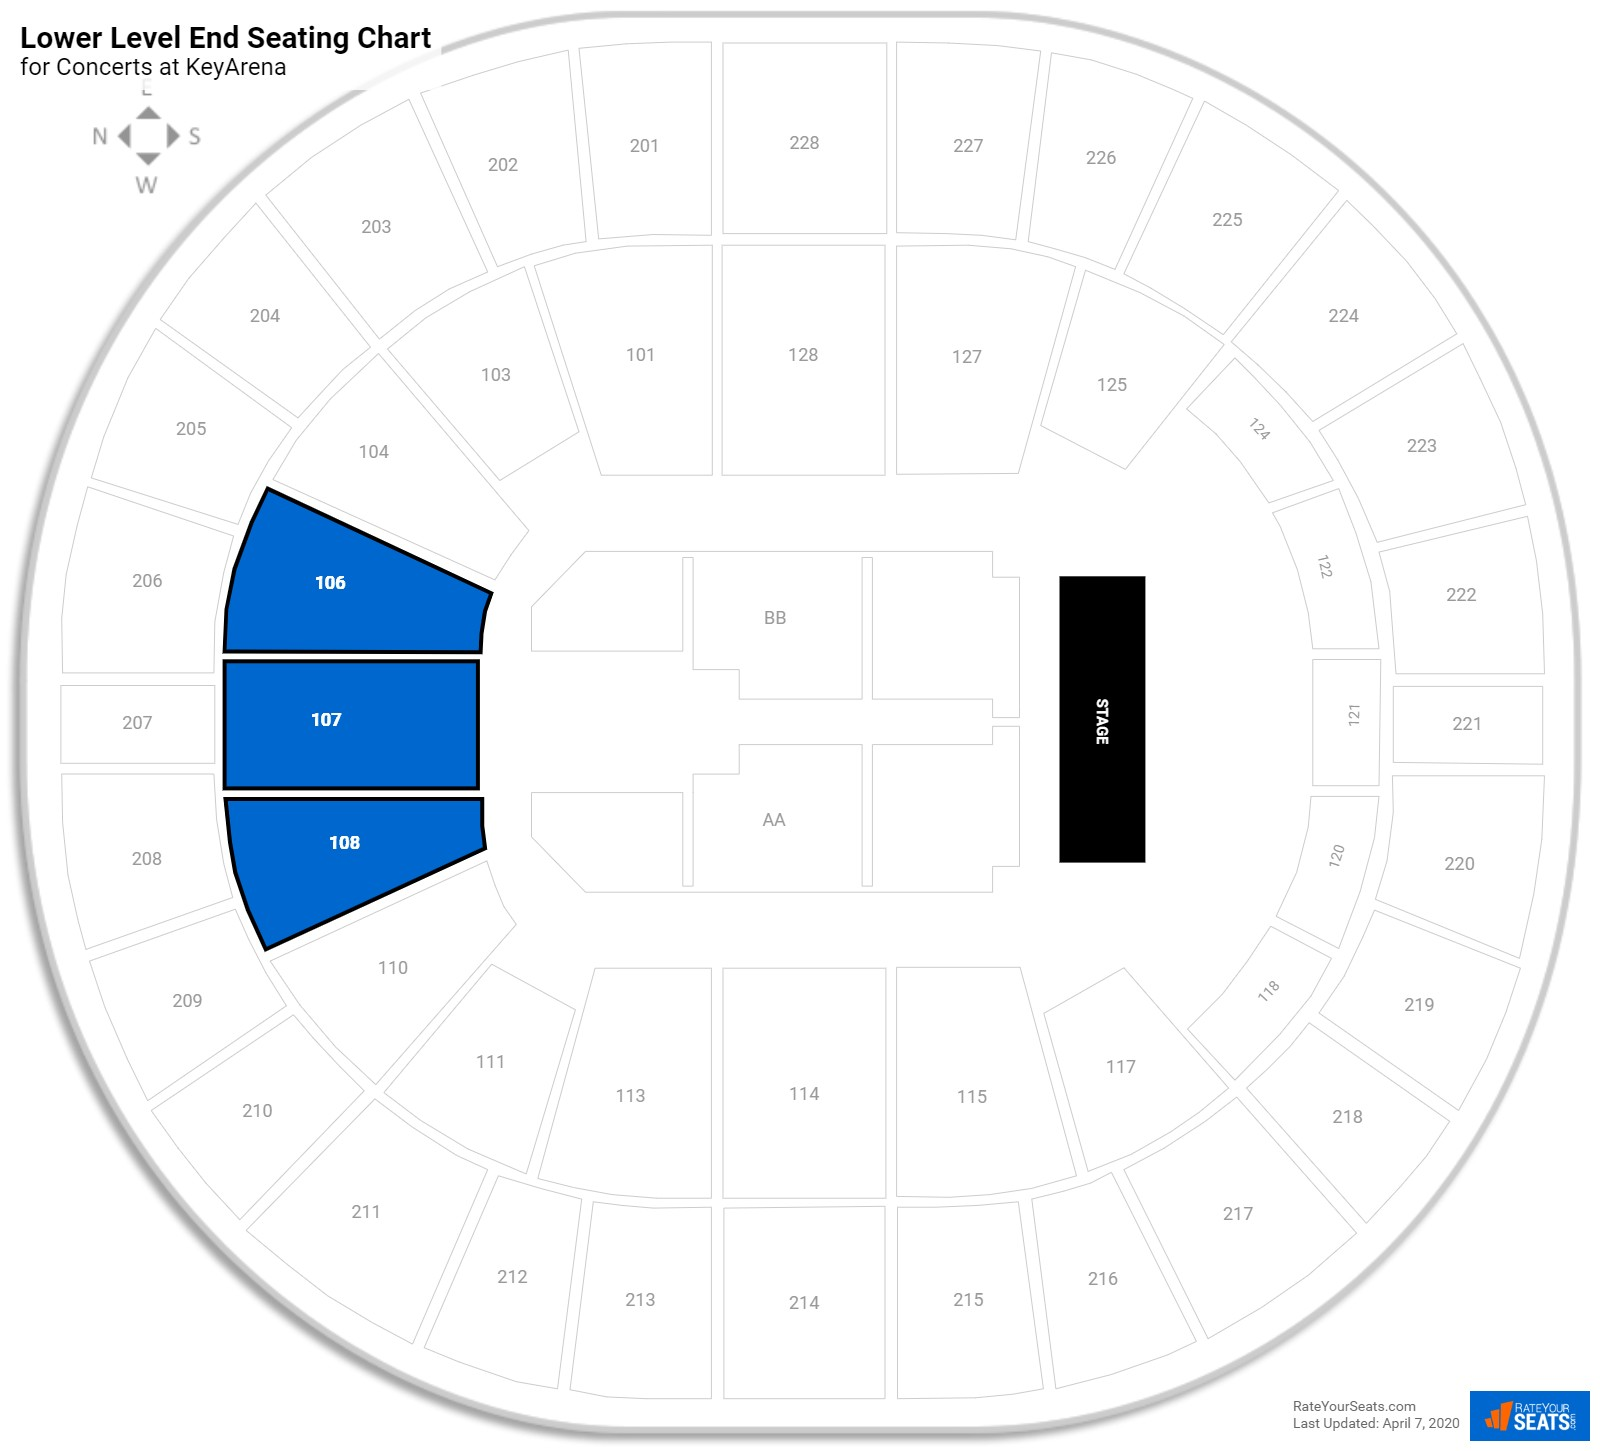 KeyArena Lower Level End seating chart